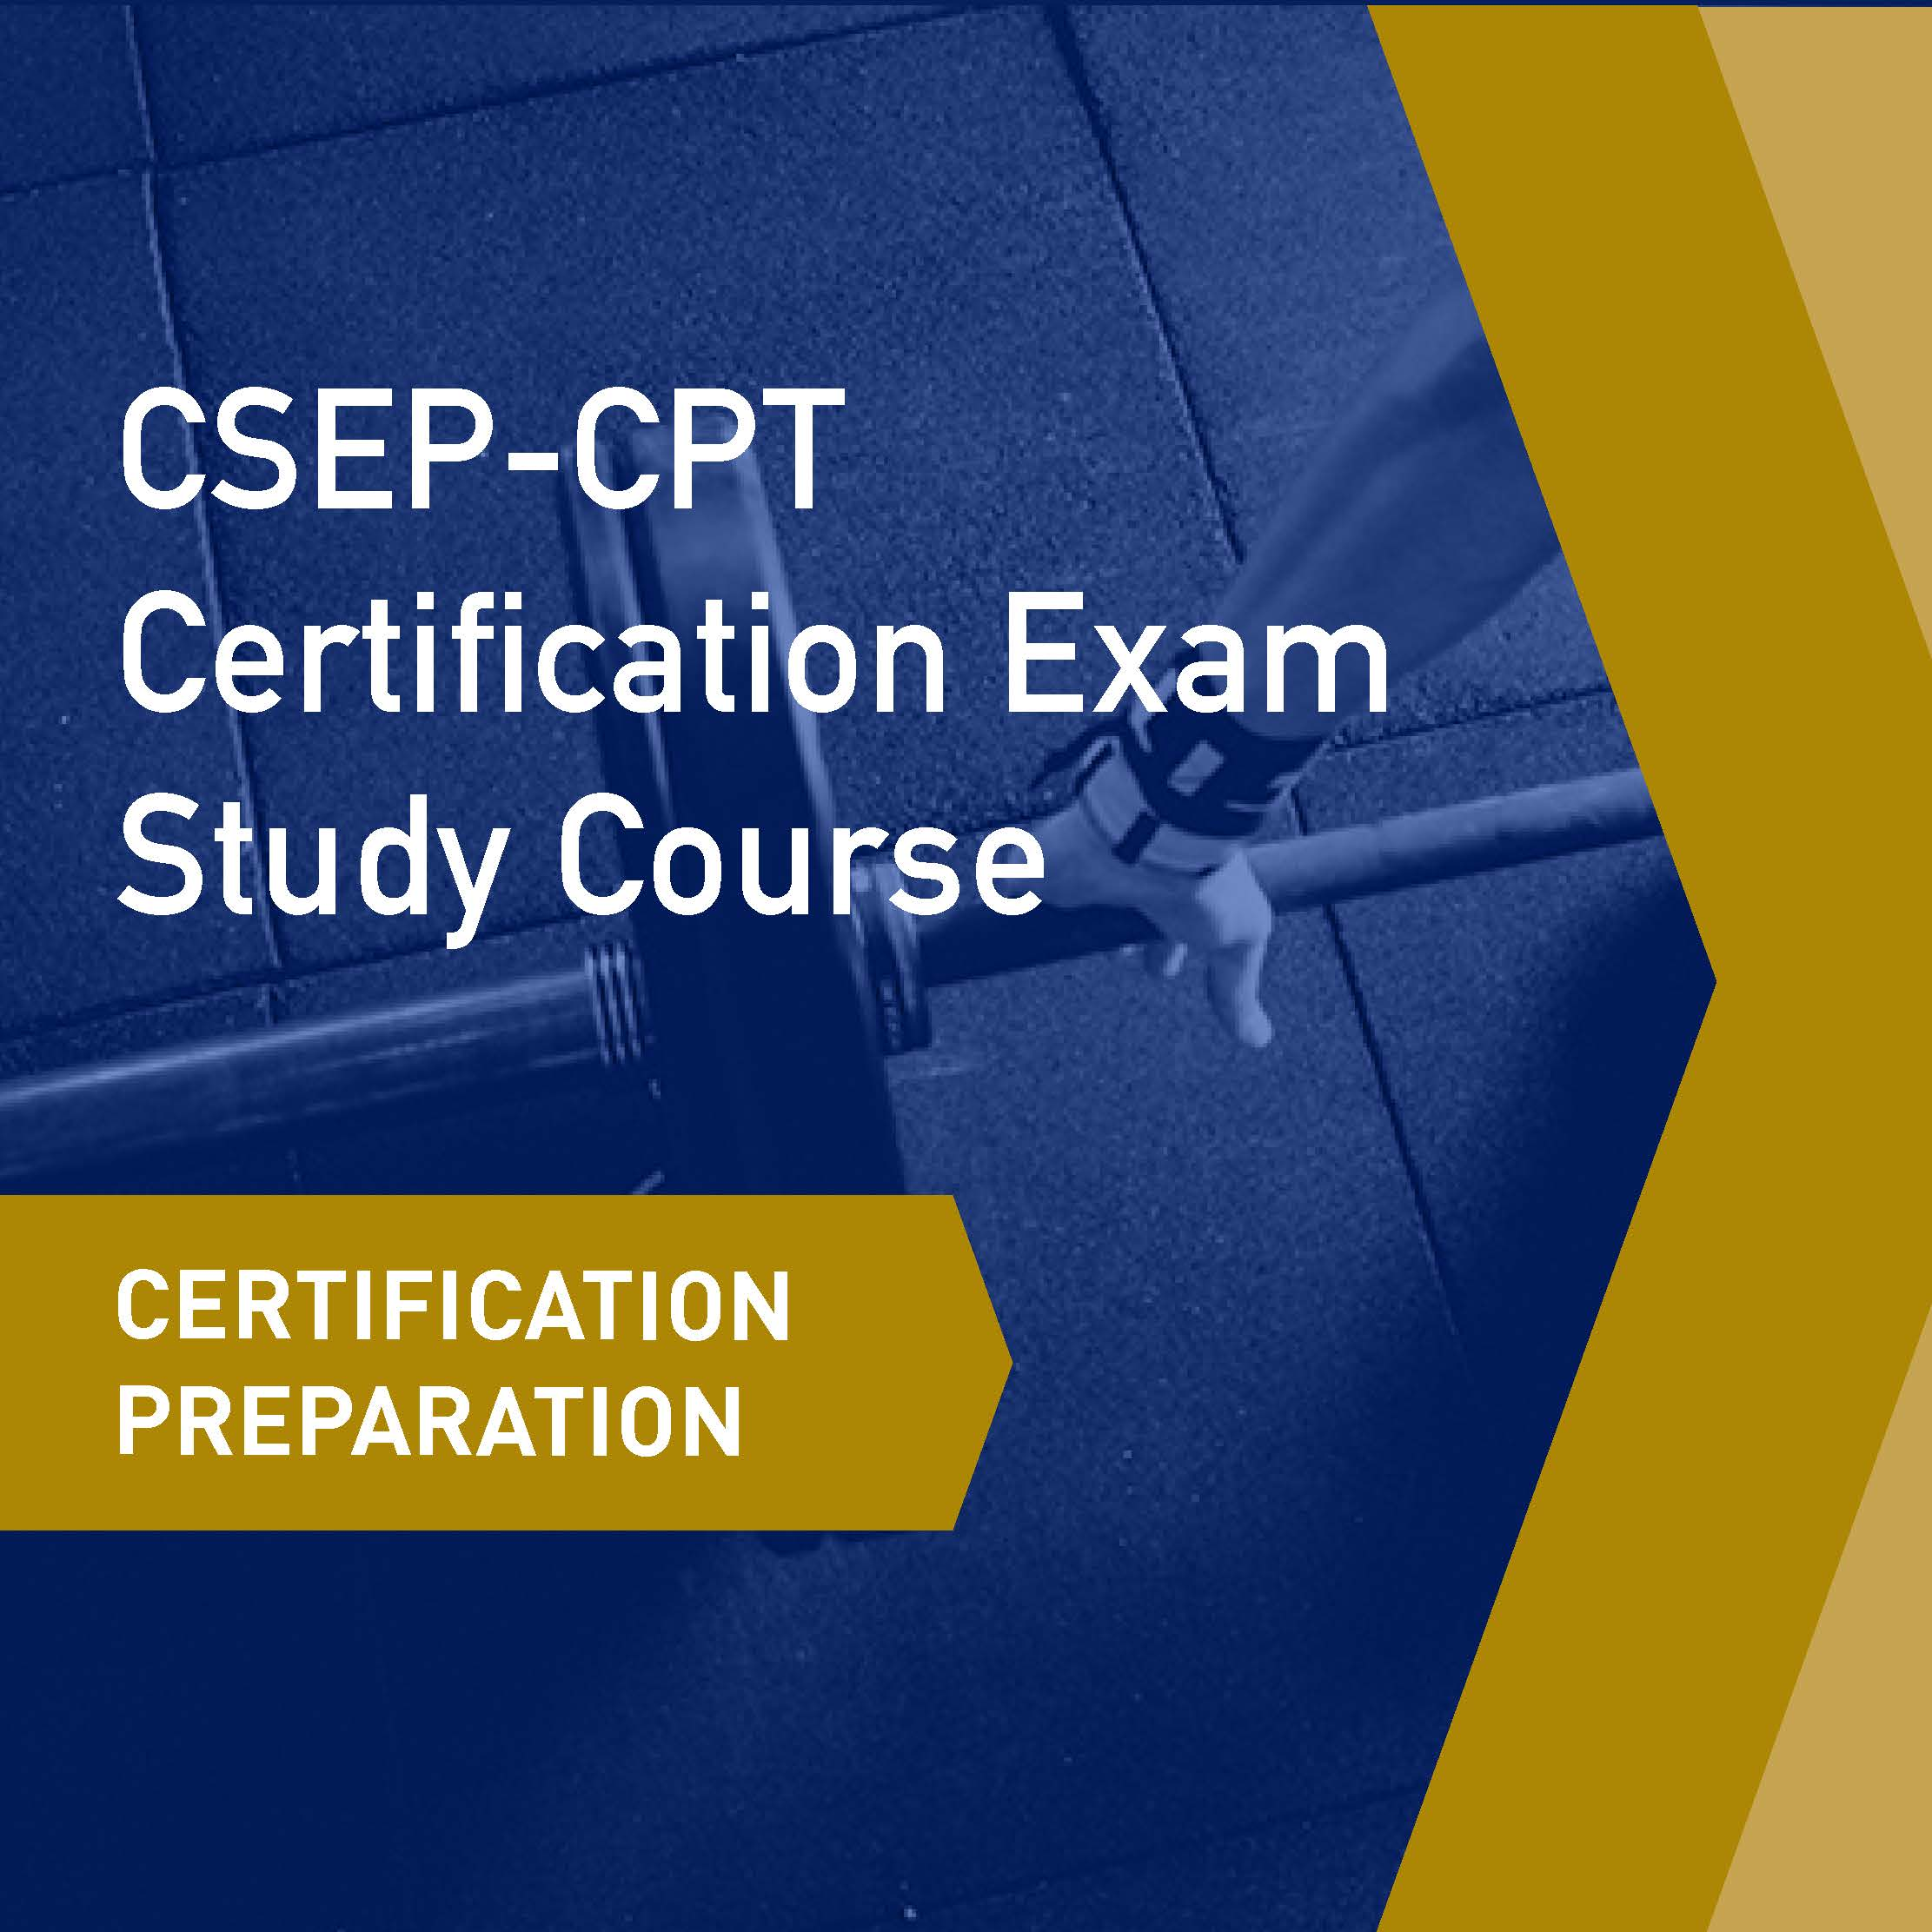 CSEP-CPT Candidate Preparation Study Course